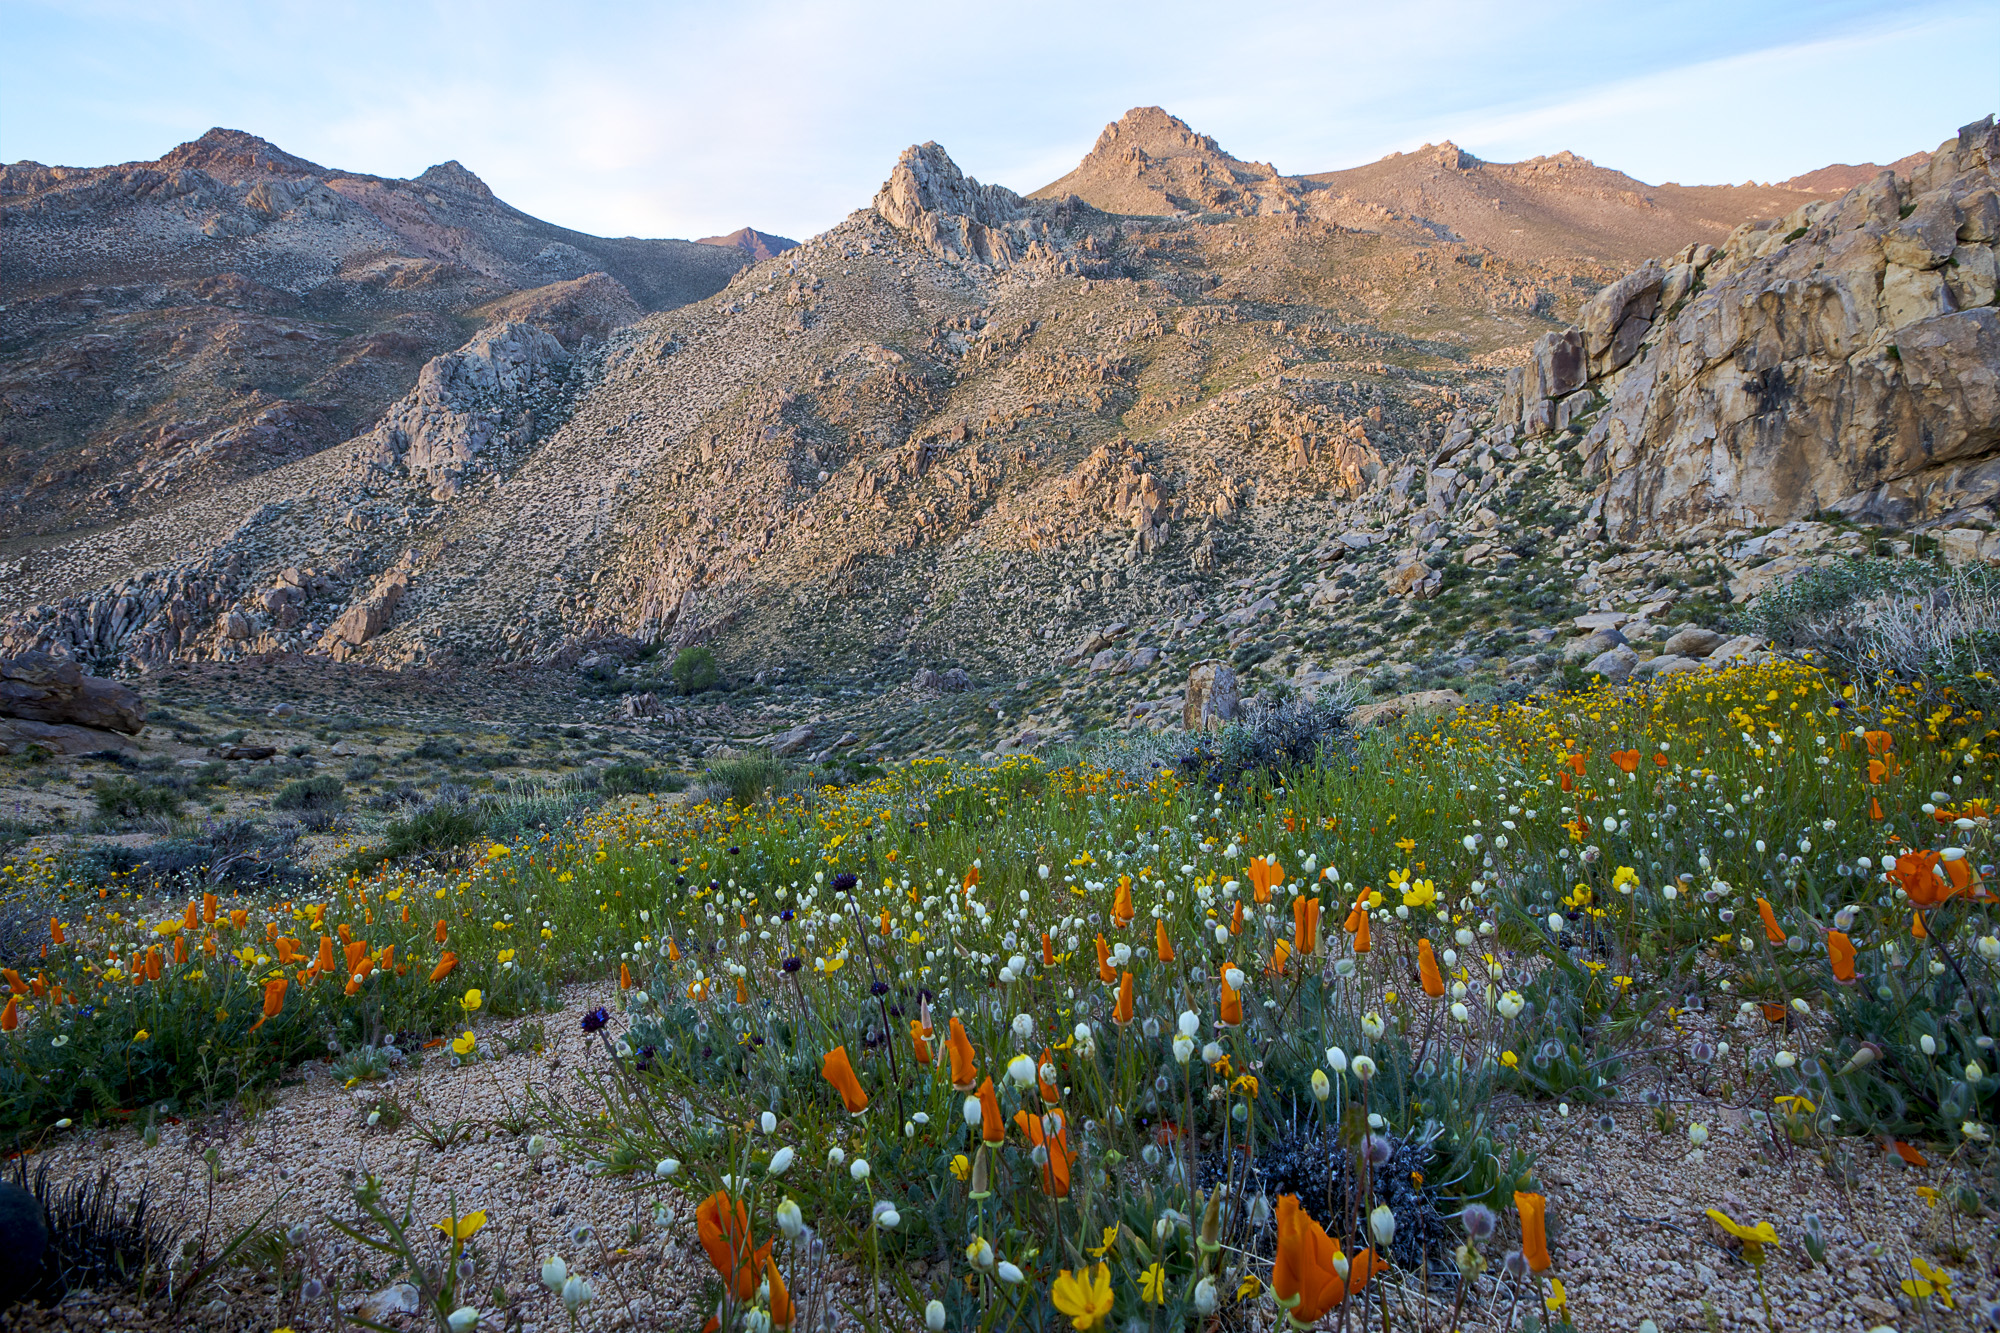 Owens_Peak_Wilderness_wildflowers_2017.jpg